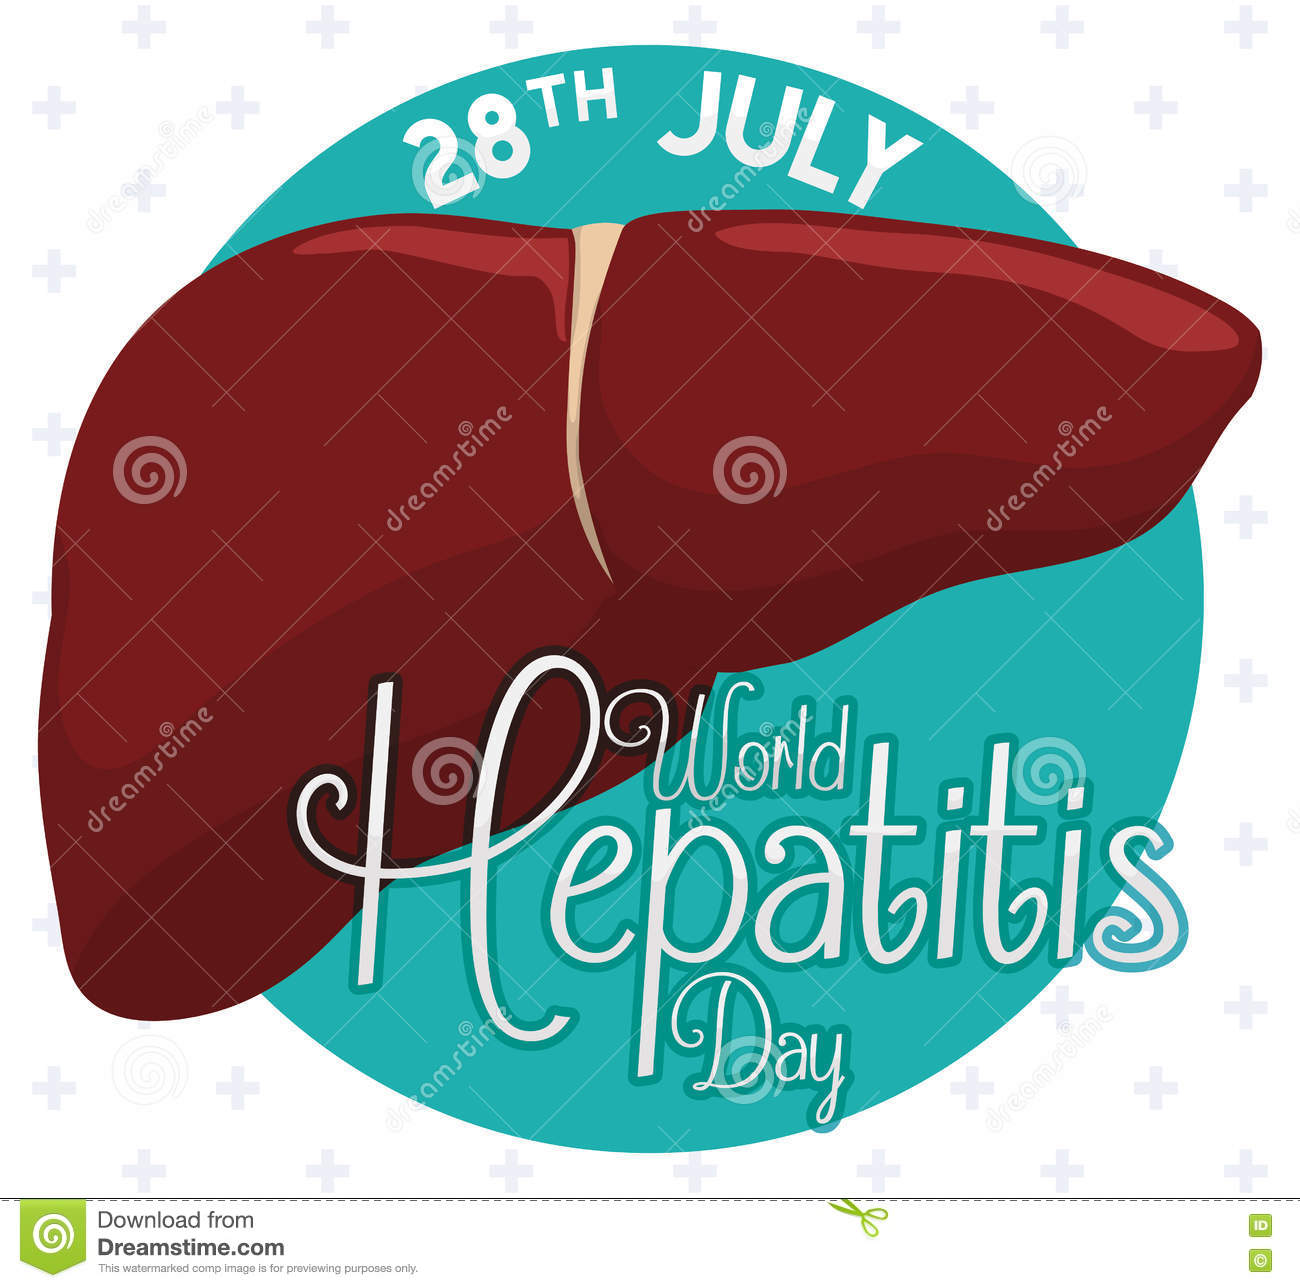 an overview of the hepatitis disorder and the inflammation of the liver in medical research Into the benefit of medical marijuana on liver disorders medical marijuana research overview liver hepatitis, inflammation of the liver.